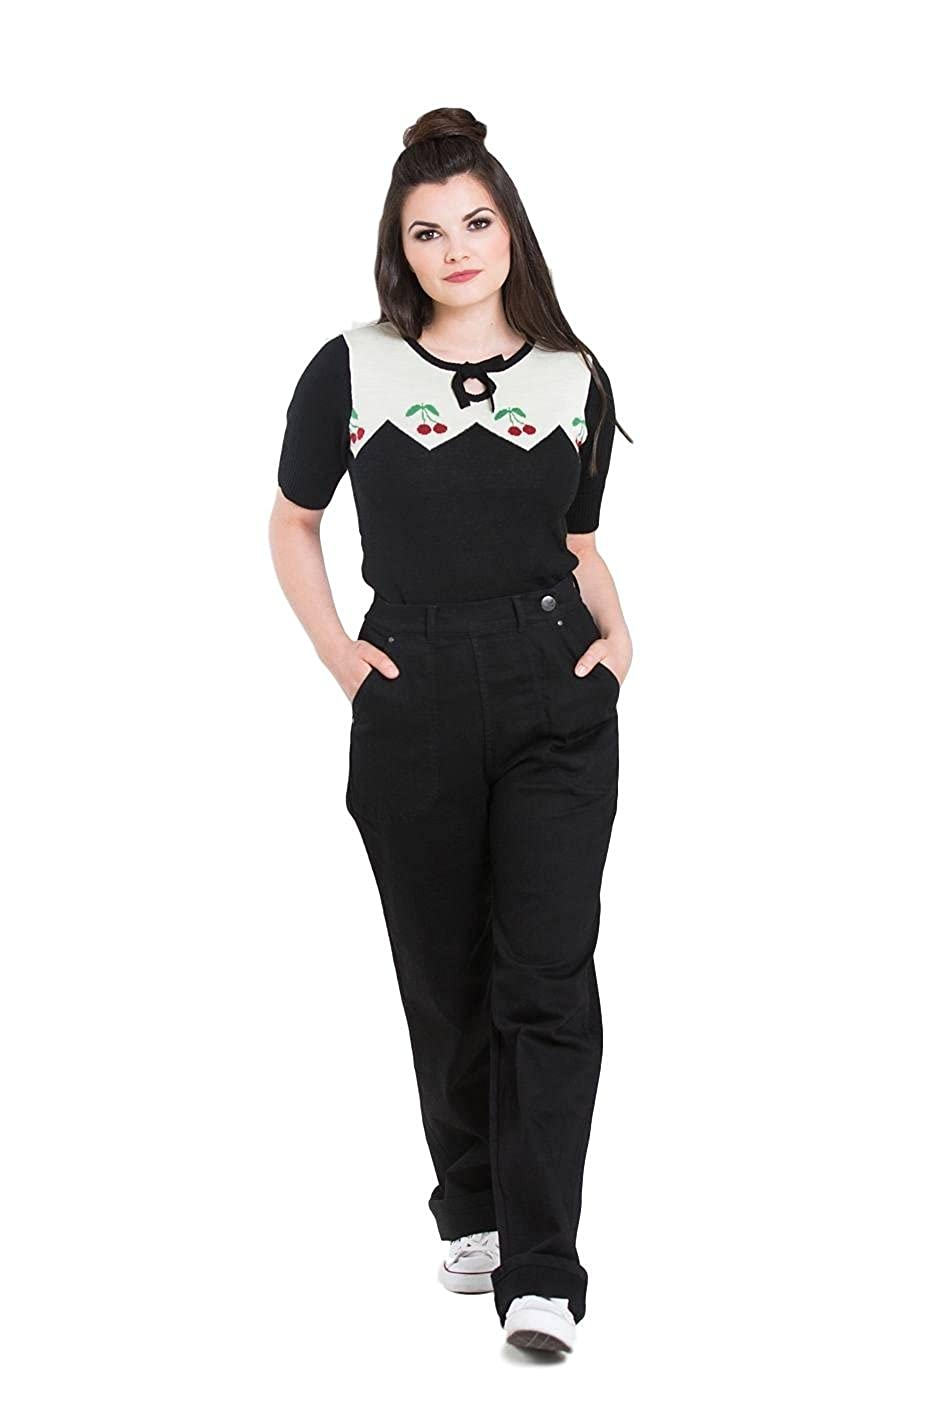 1940s Swing Pants & Sailor Trousers- Wide Leg, High Waist Hell Bunny Weston Denim Jeans 40s 50s Vintage Retro Rockabilly Trousers Pants $49.99 AT vintagedancer.com